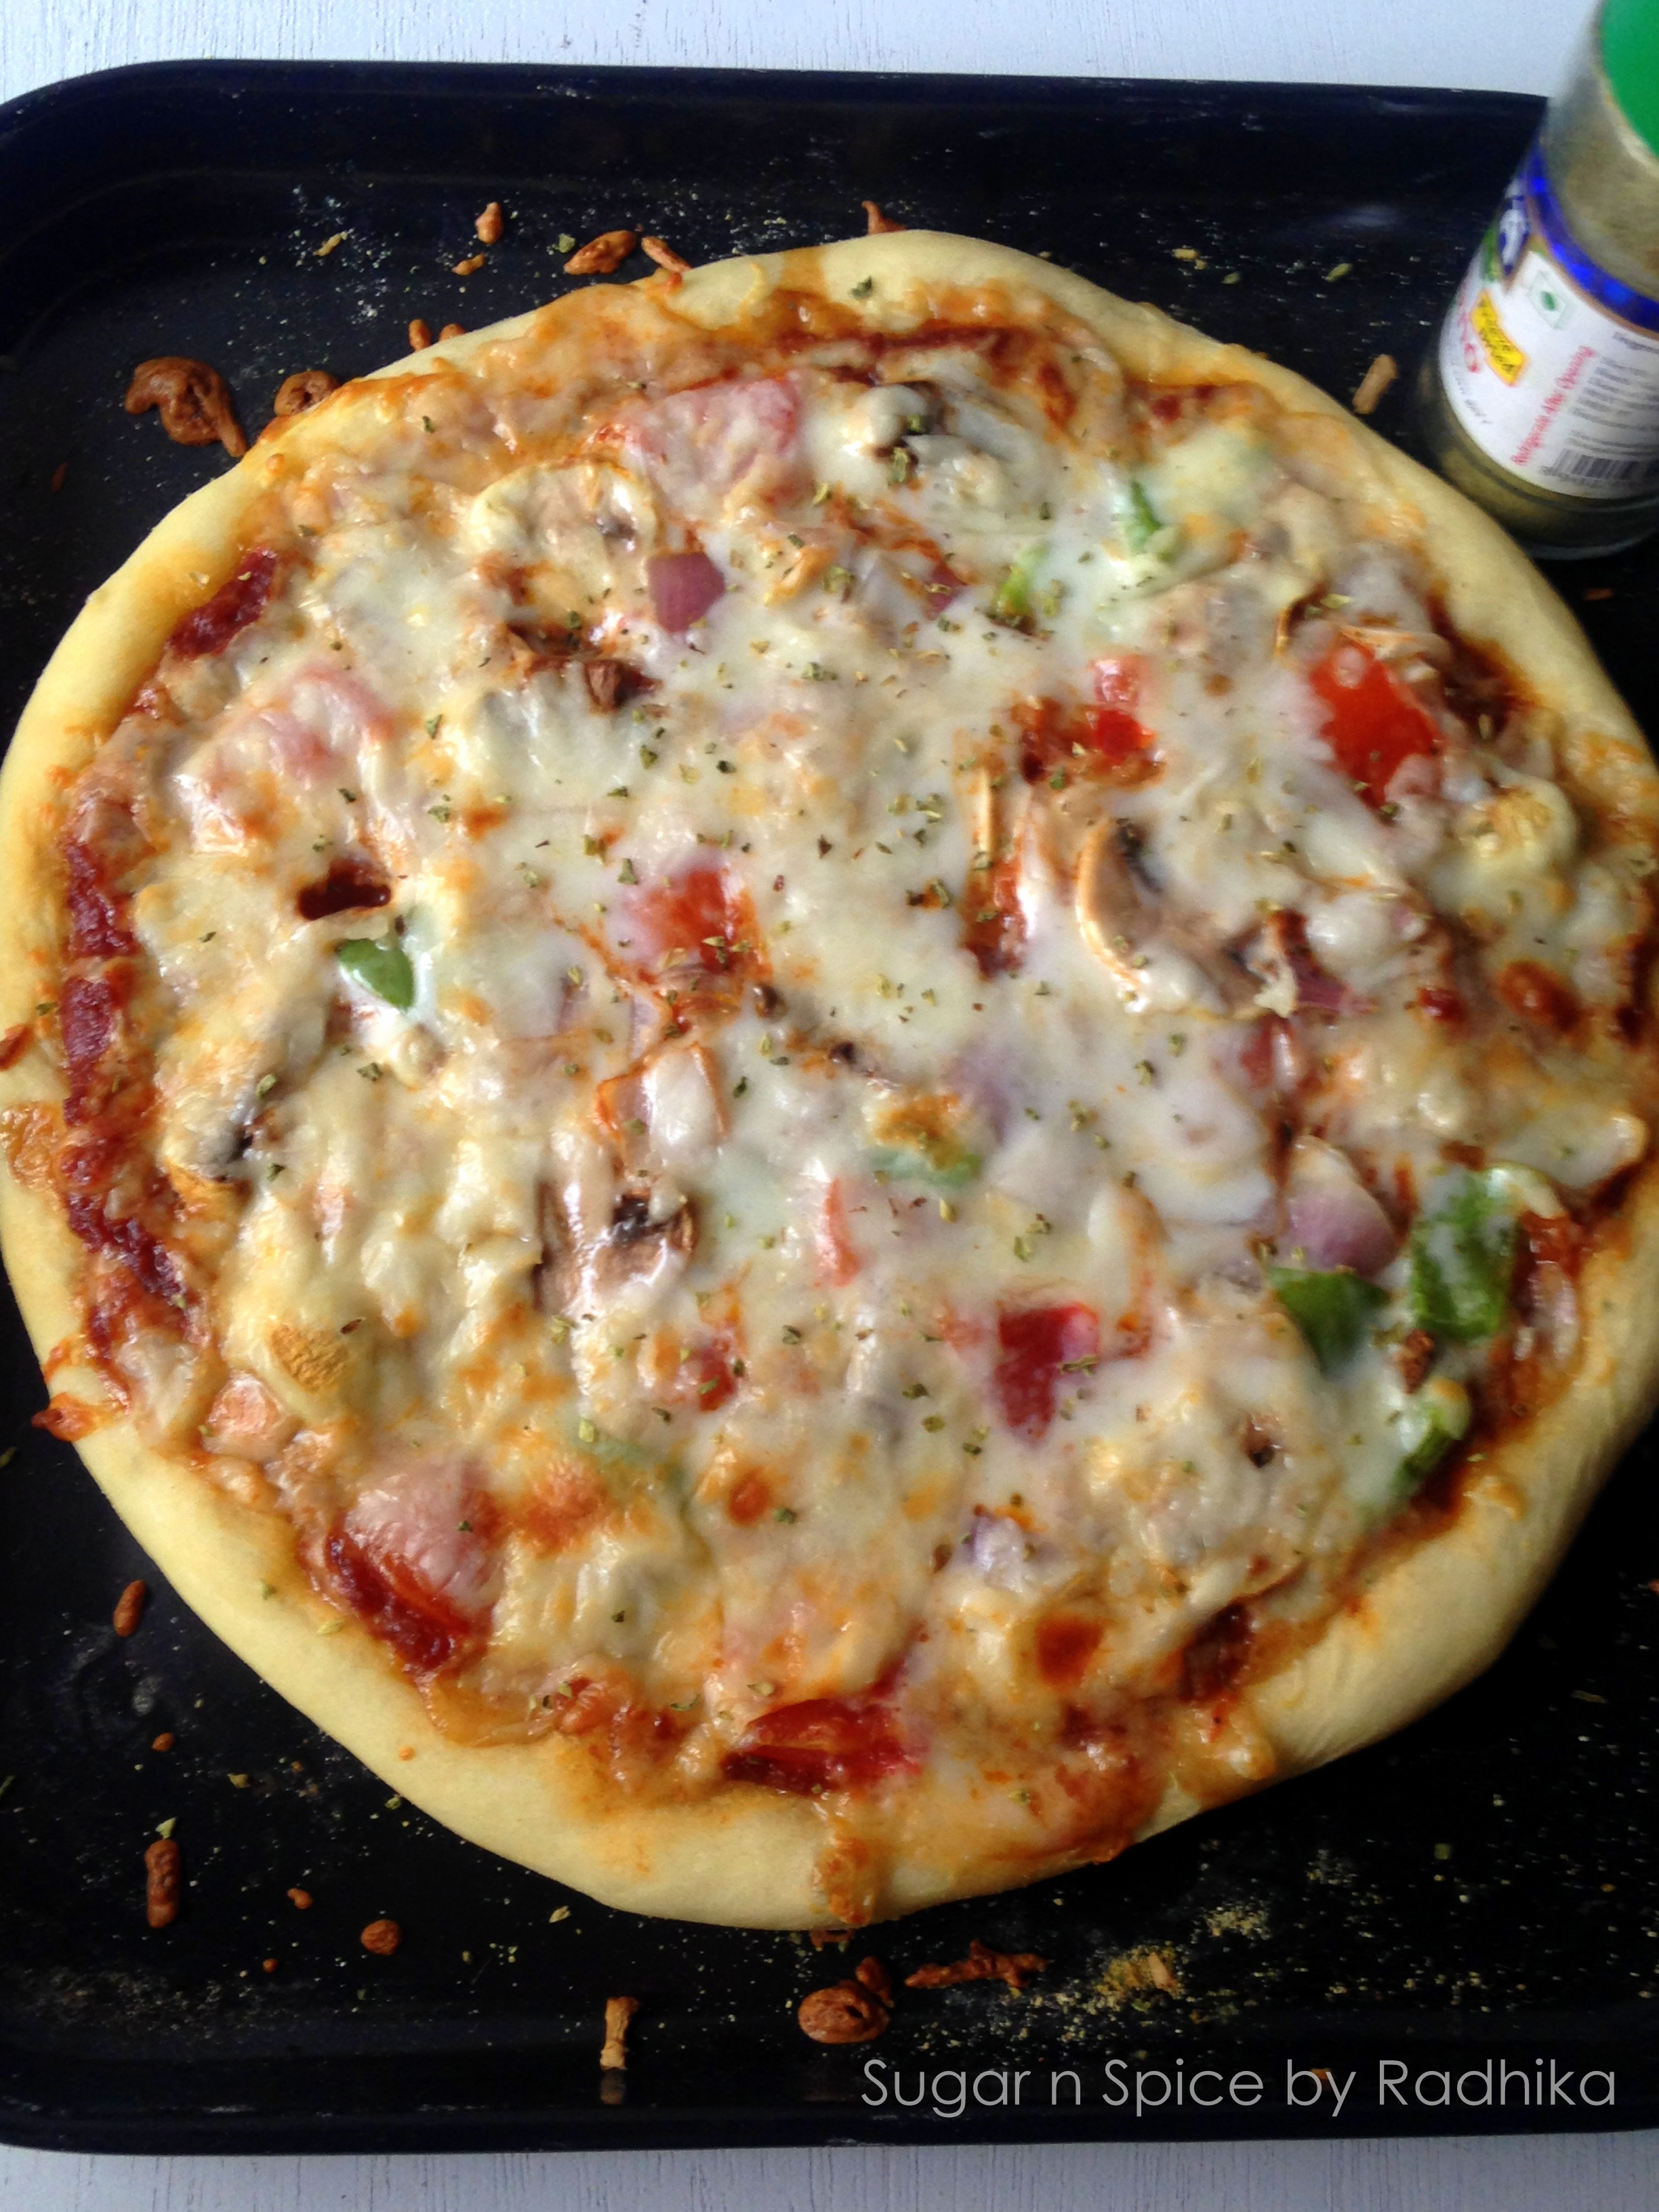 Homemade classic veggie pizza sugar spice by radhika for Classic house of pizza taunton ma